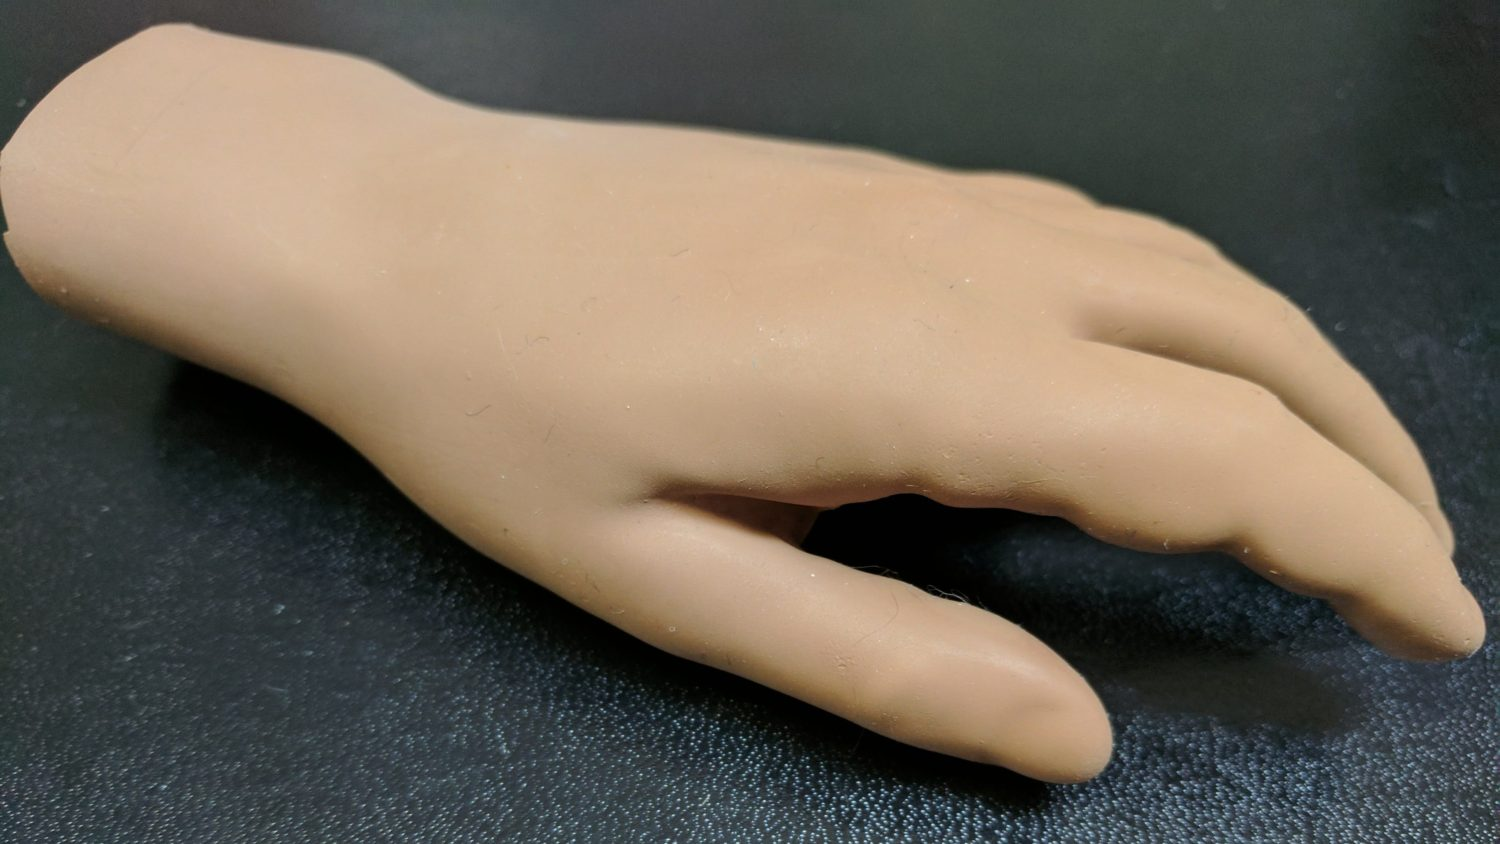 Pediatric Hand Prosthesis - Right Side